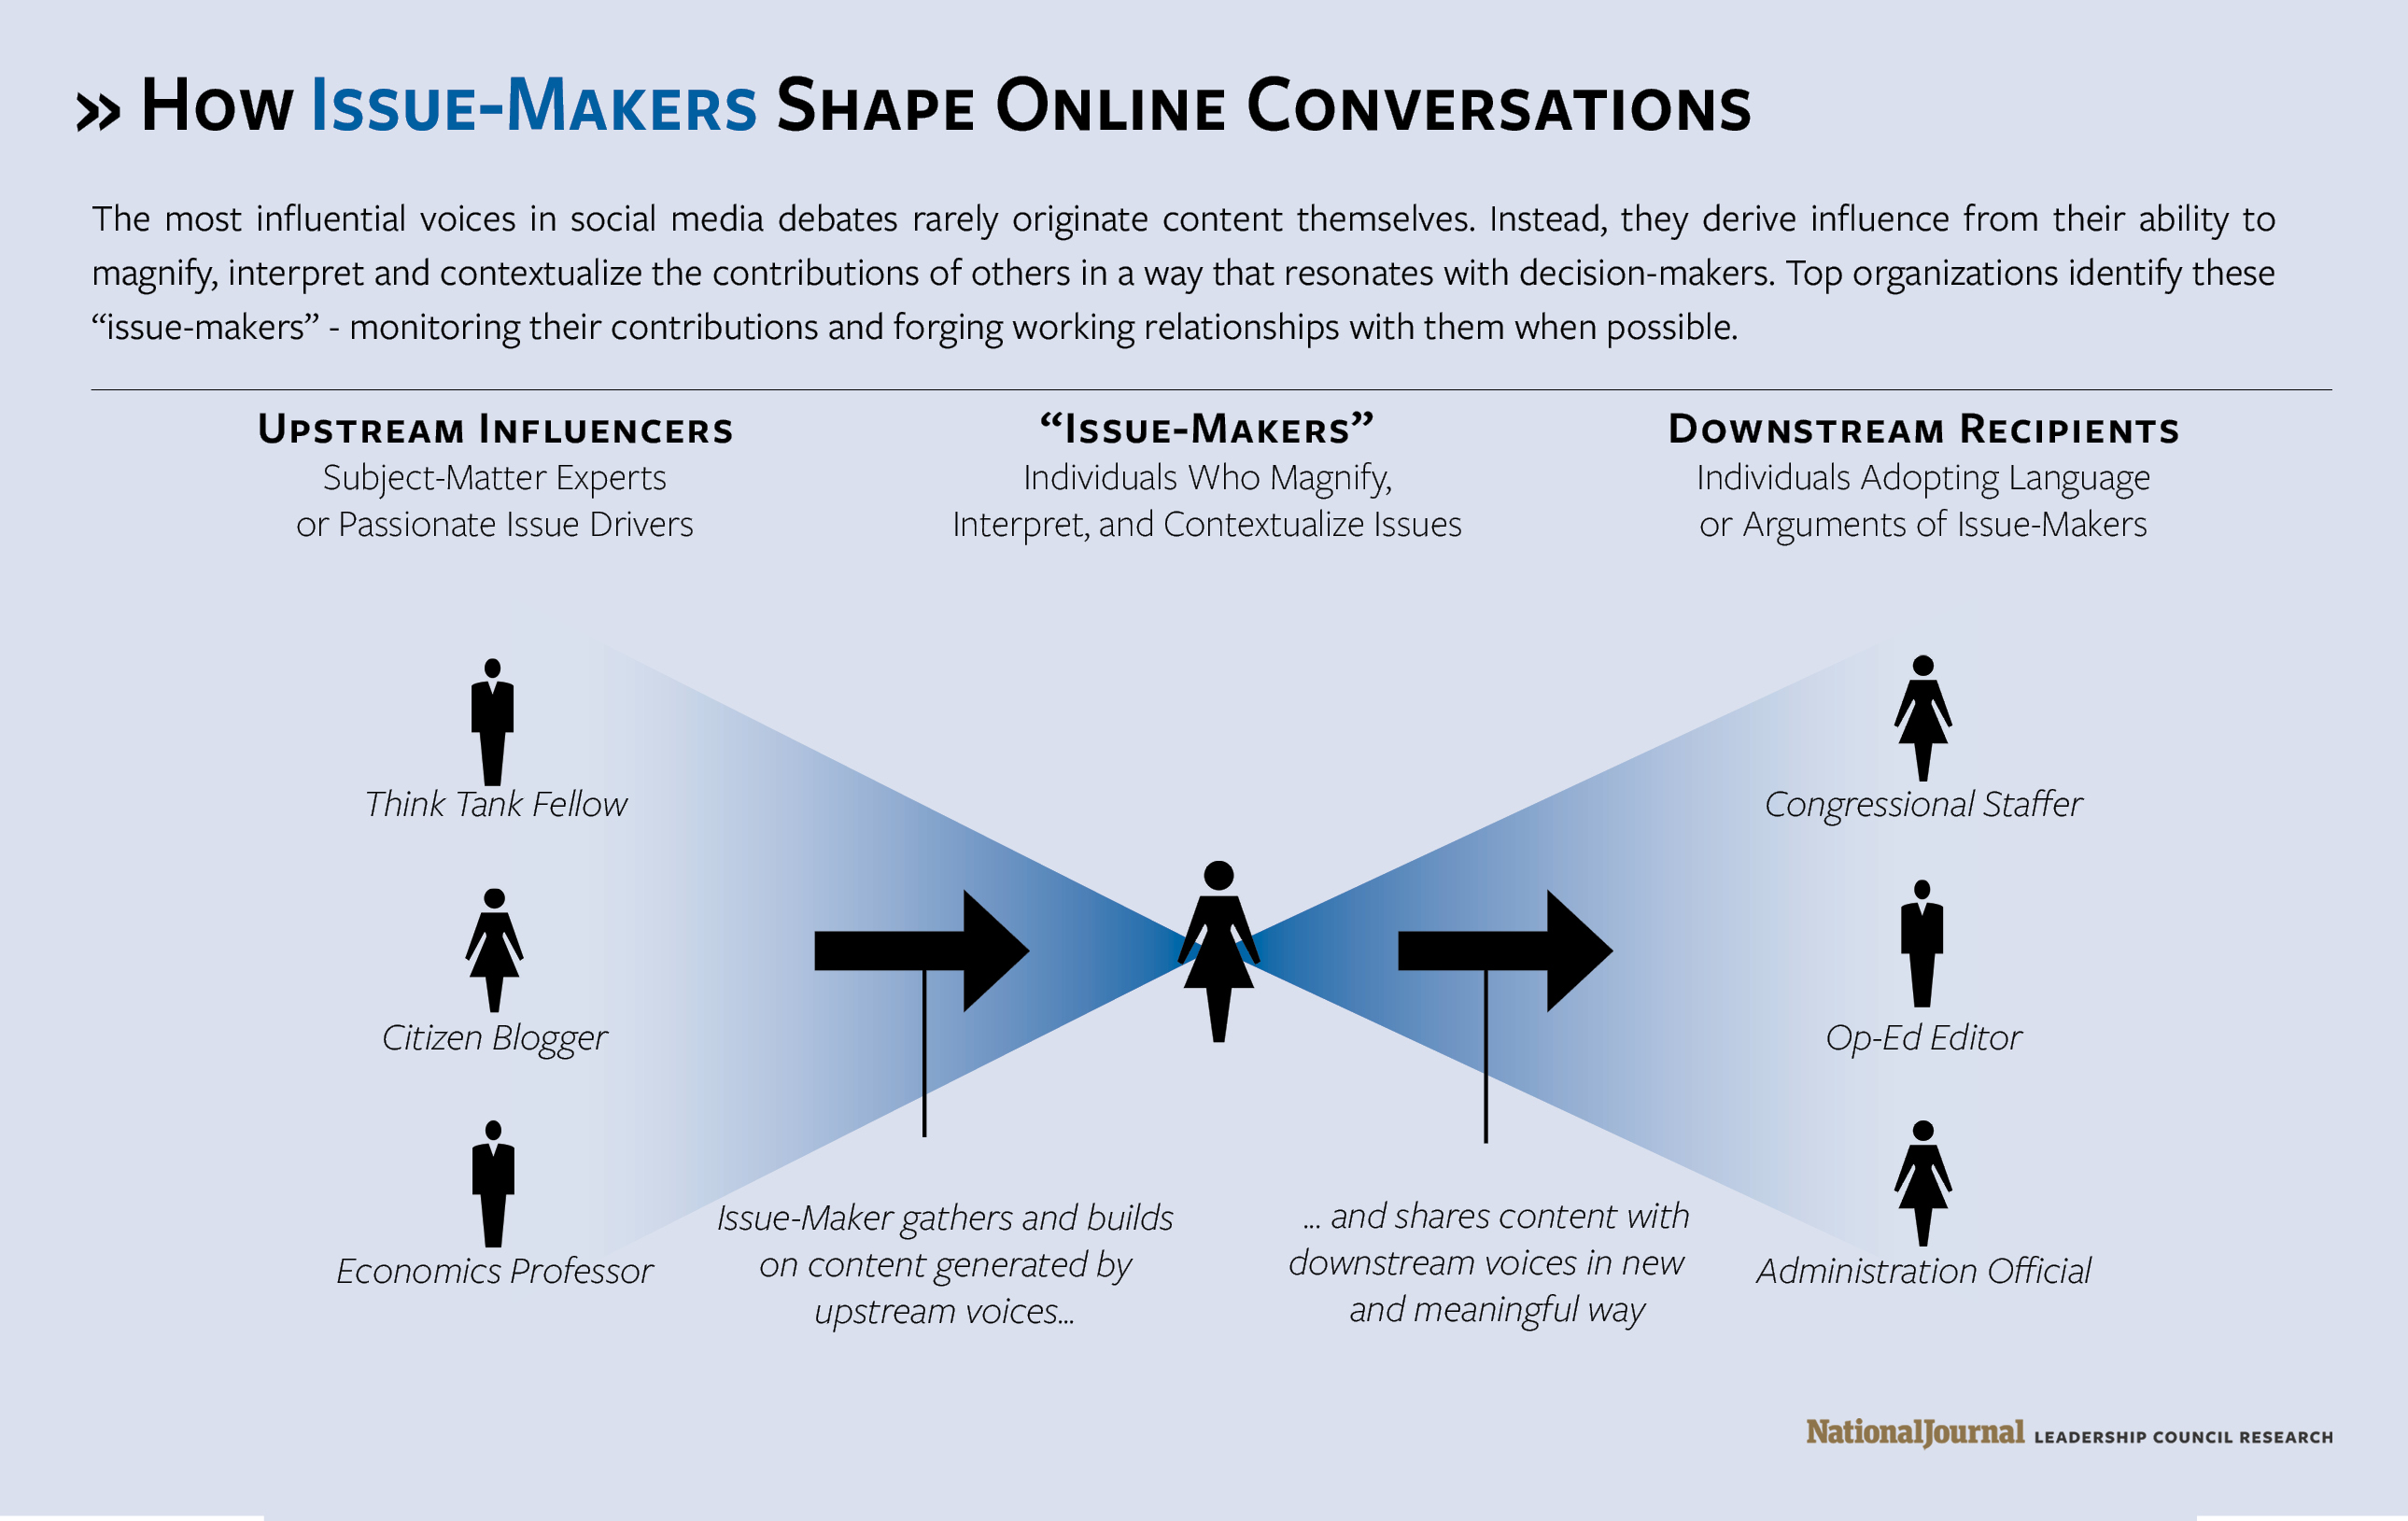 How Issue-Makers Shape Online Conversations